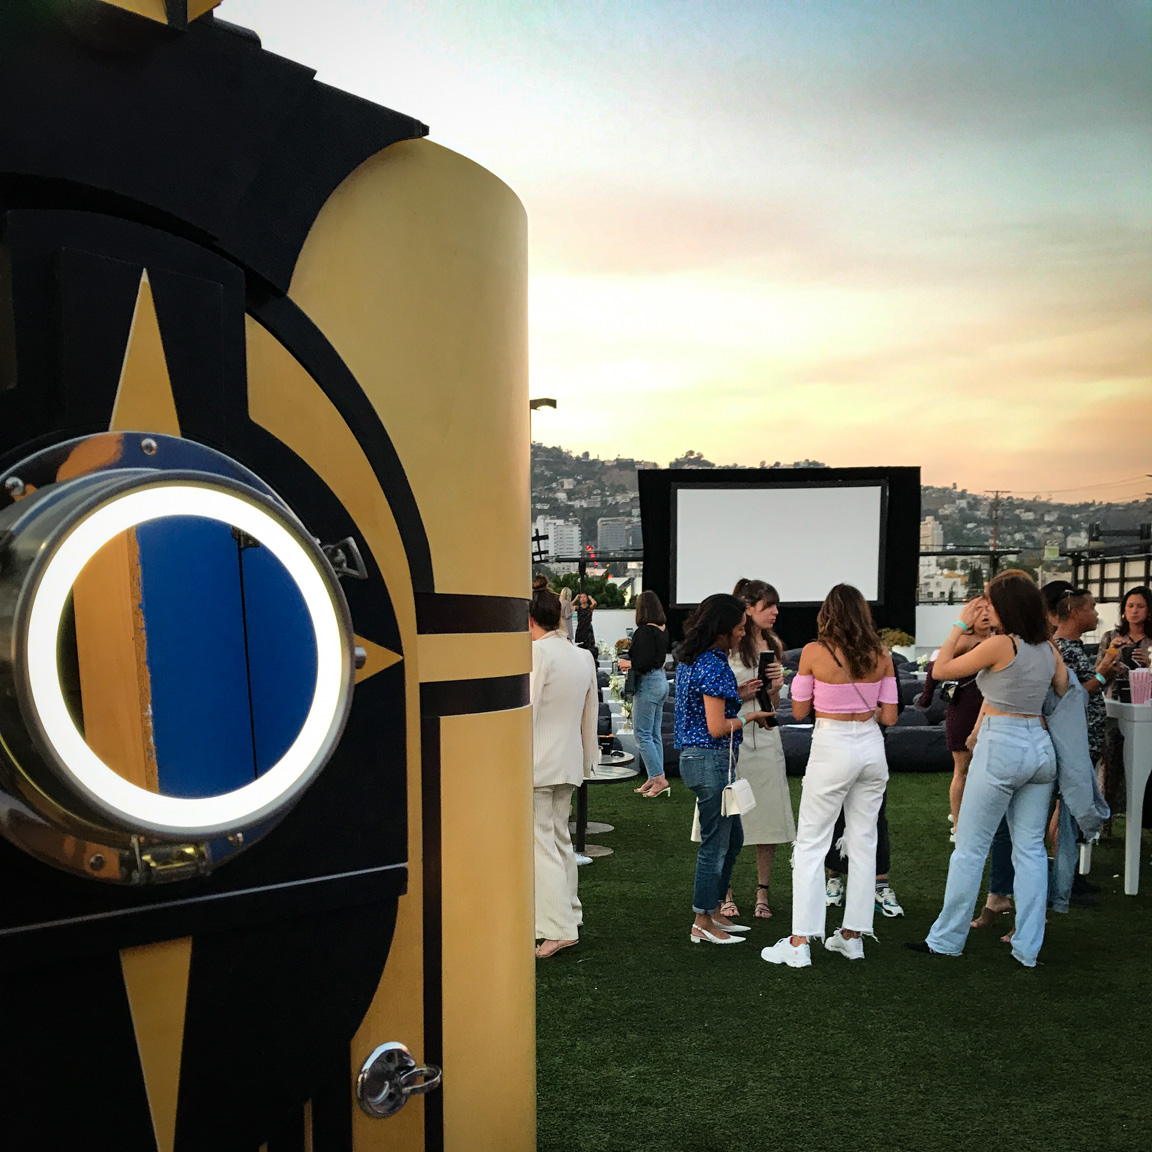 Thanks to the team at ShopBop for having Lucky Photo Booth be a part of their rooftop event!